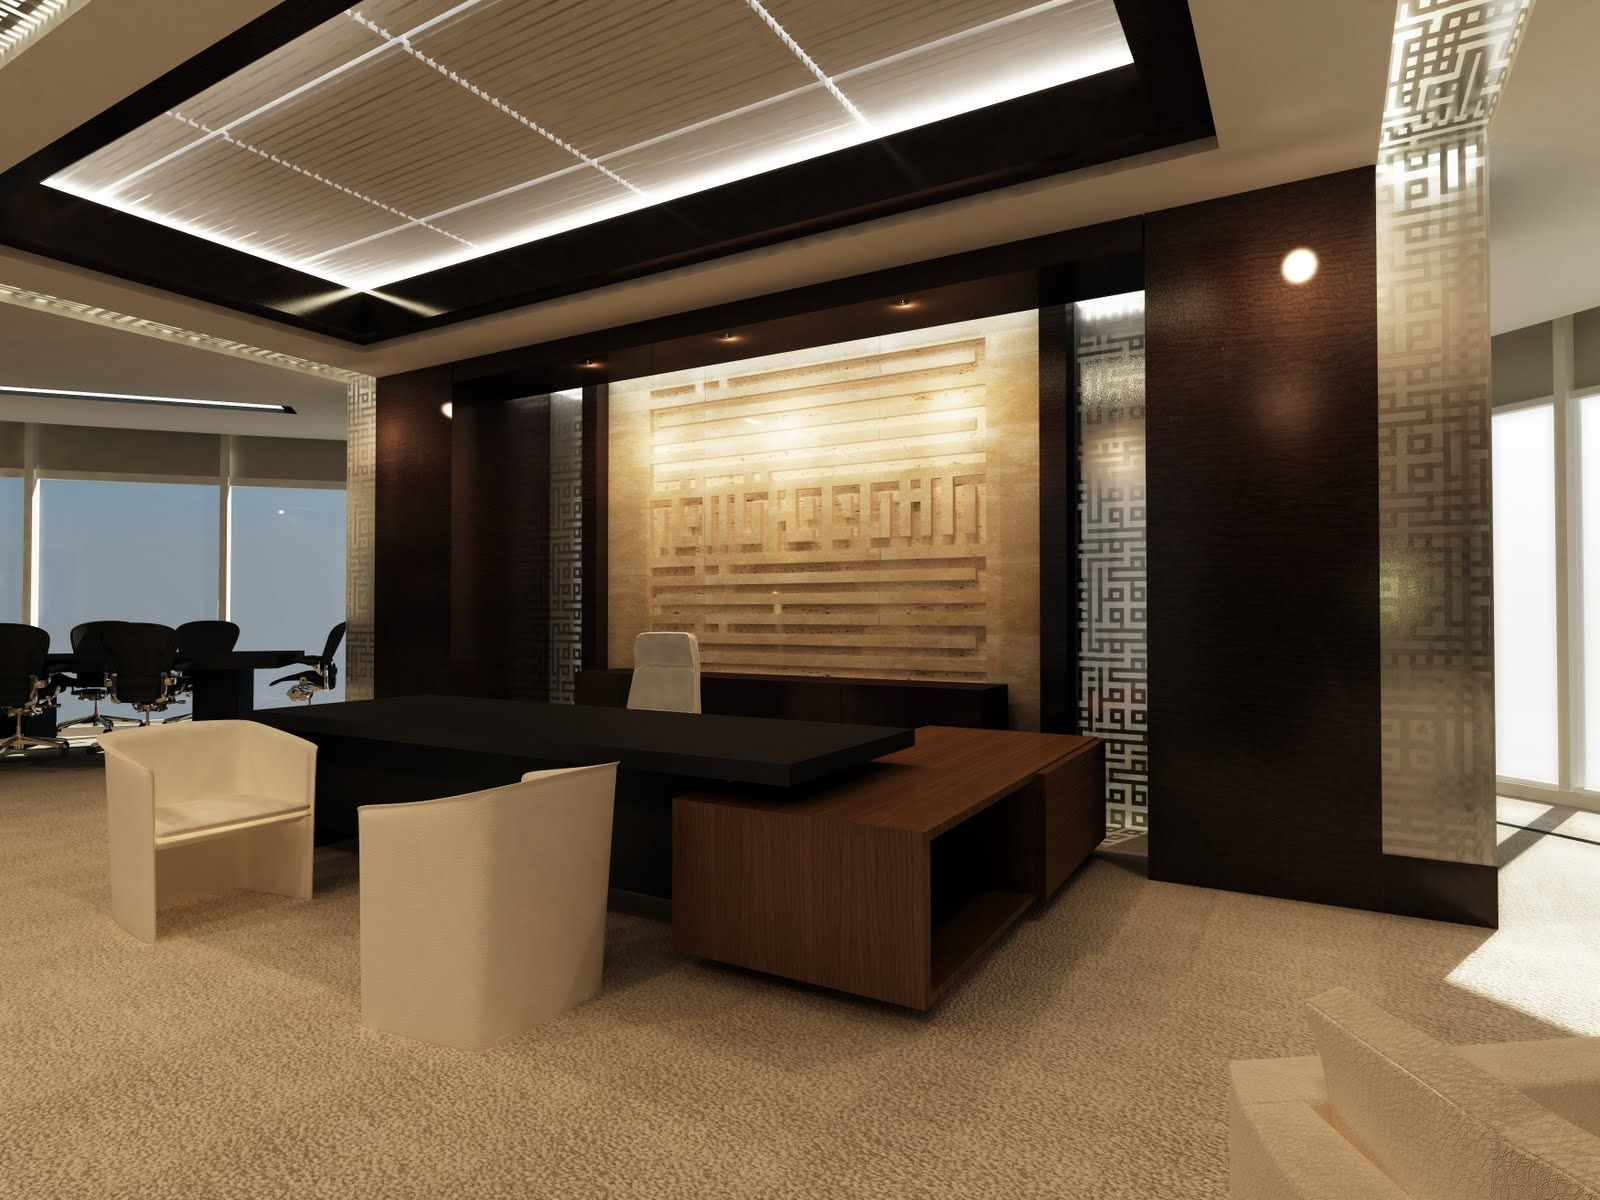 Office interior design intended for office interior design for Office design furniture layout